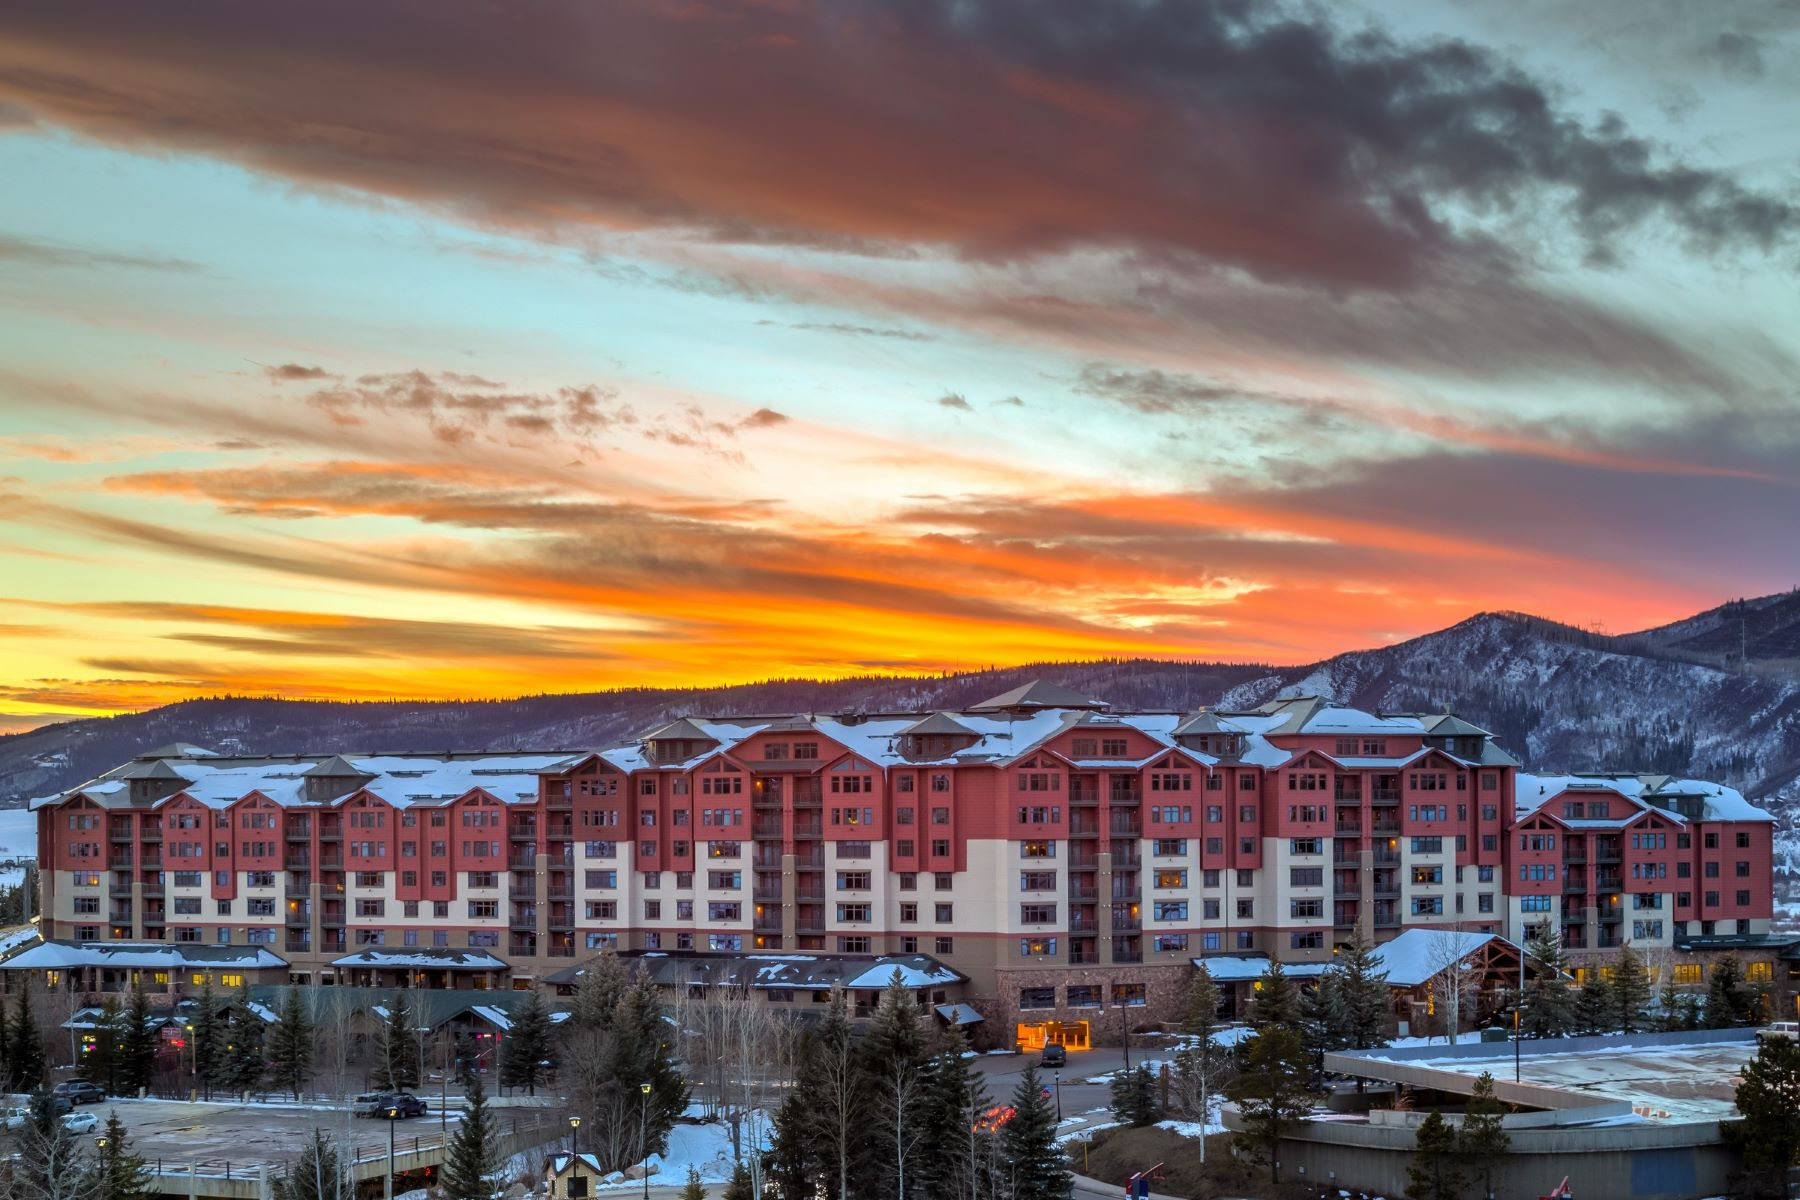 Fractional Ownership for Sale at Steamboat Grand Resort 2300 Mt. Werner Cir 706 QI Steamboat Springs, Colorado 80487 United States